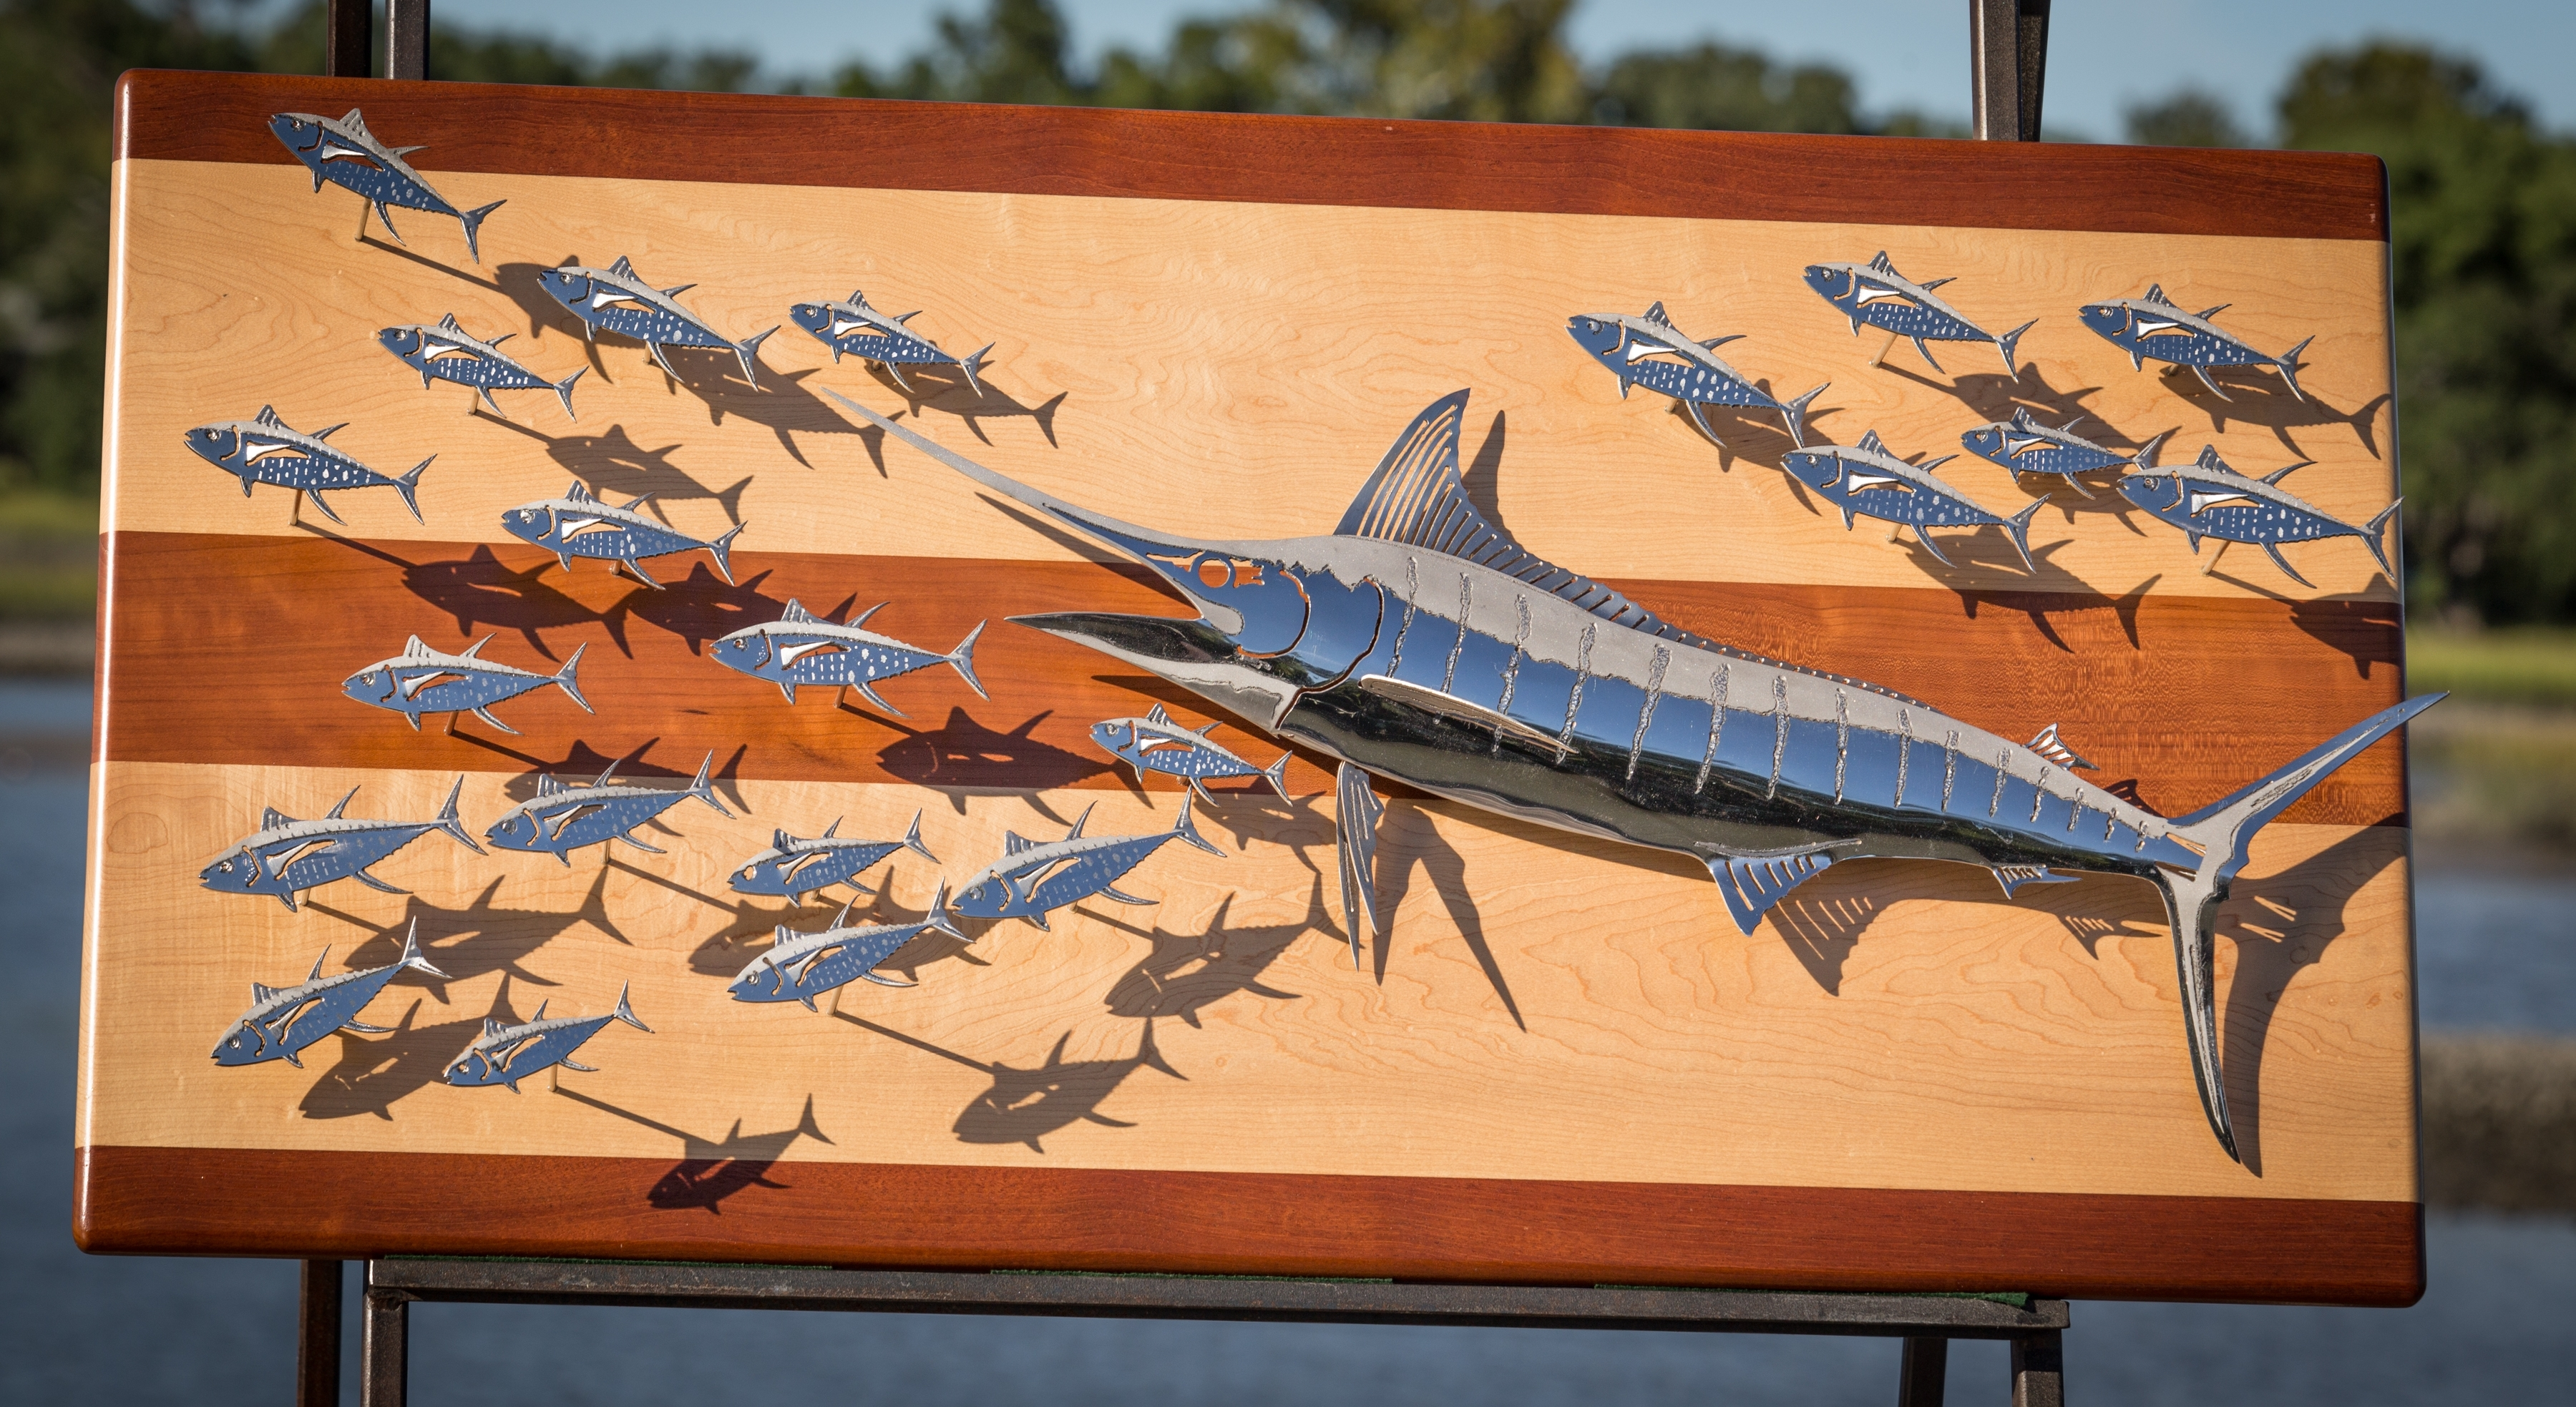 Custom Art And Sculptures | R Mended Metals Throughout Best And Newest Abstract Metal Fish Wall Art (View 2 of 20)